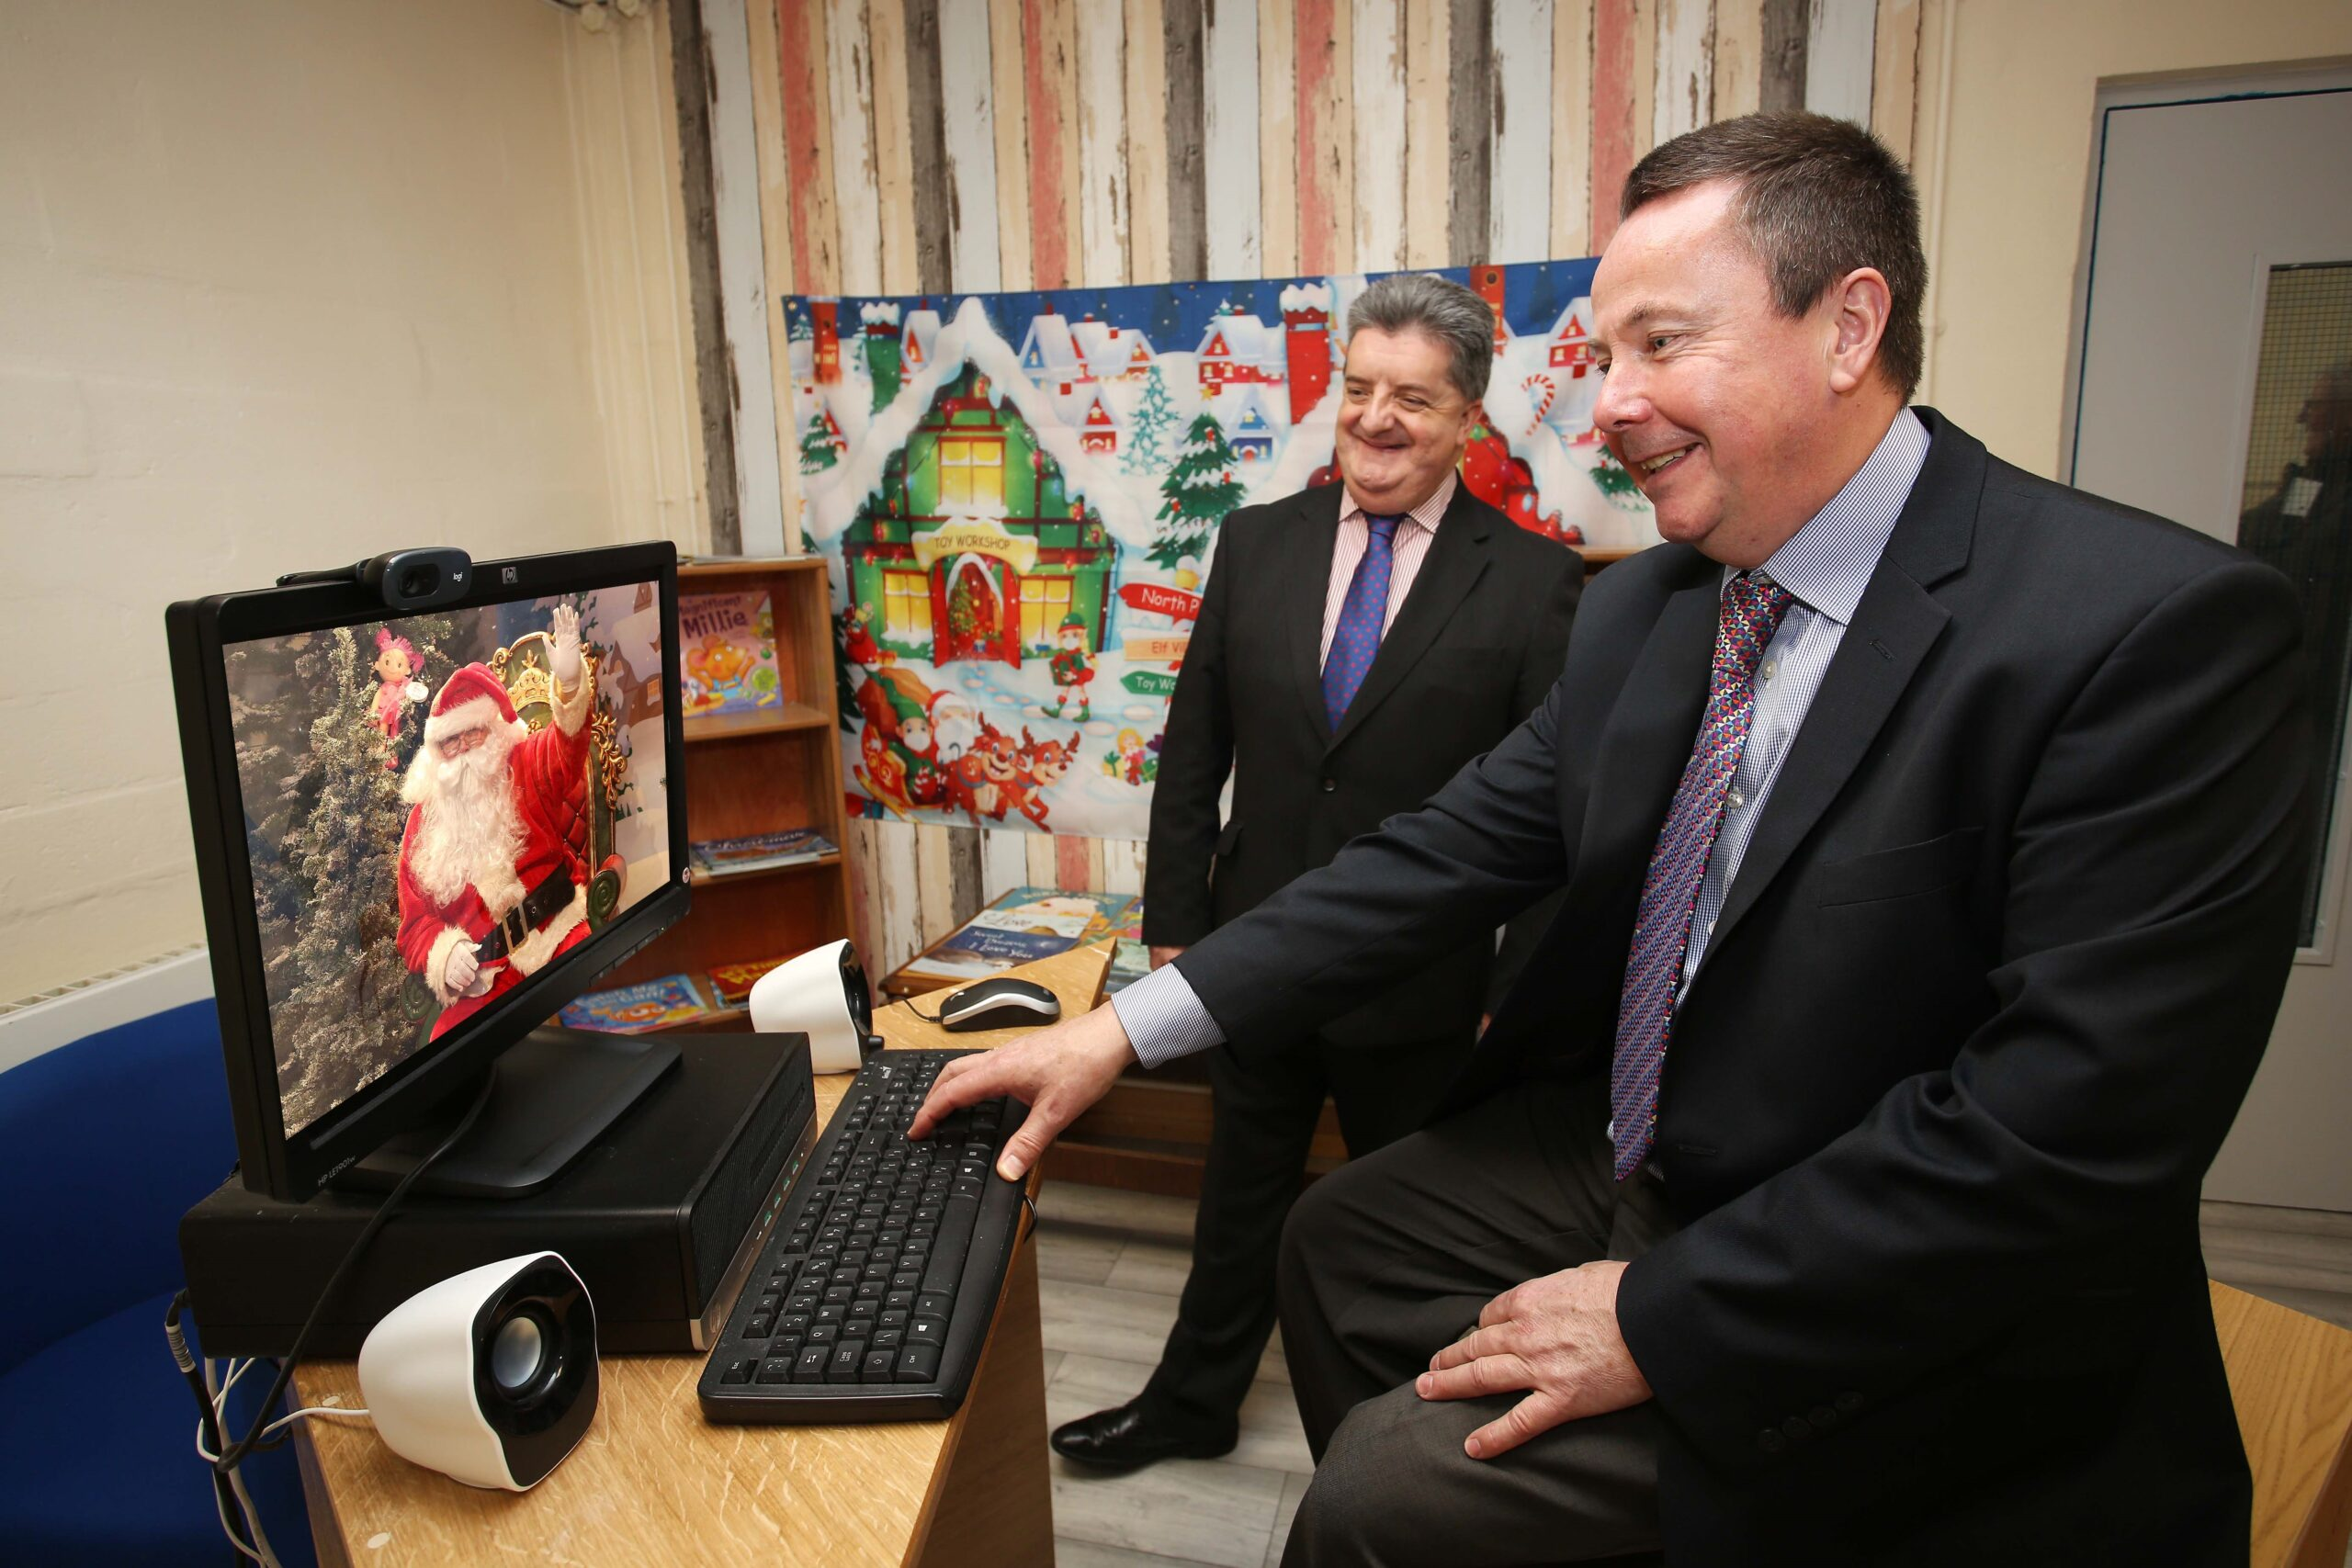 Justice Minister welcomes prison virtual visits over Christmas - NI prisons